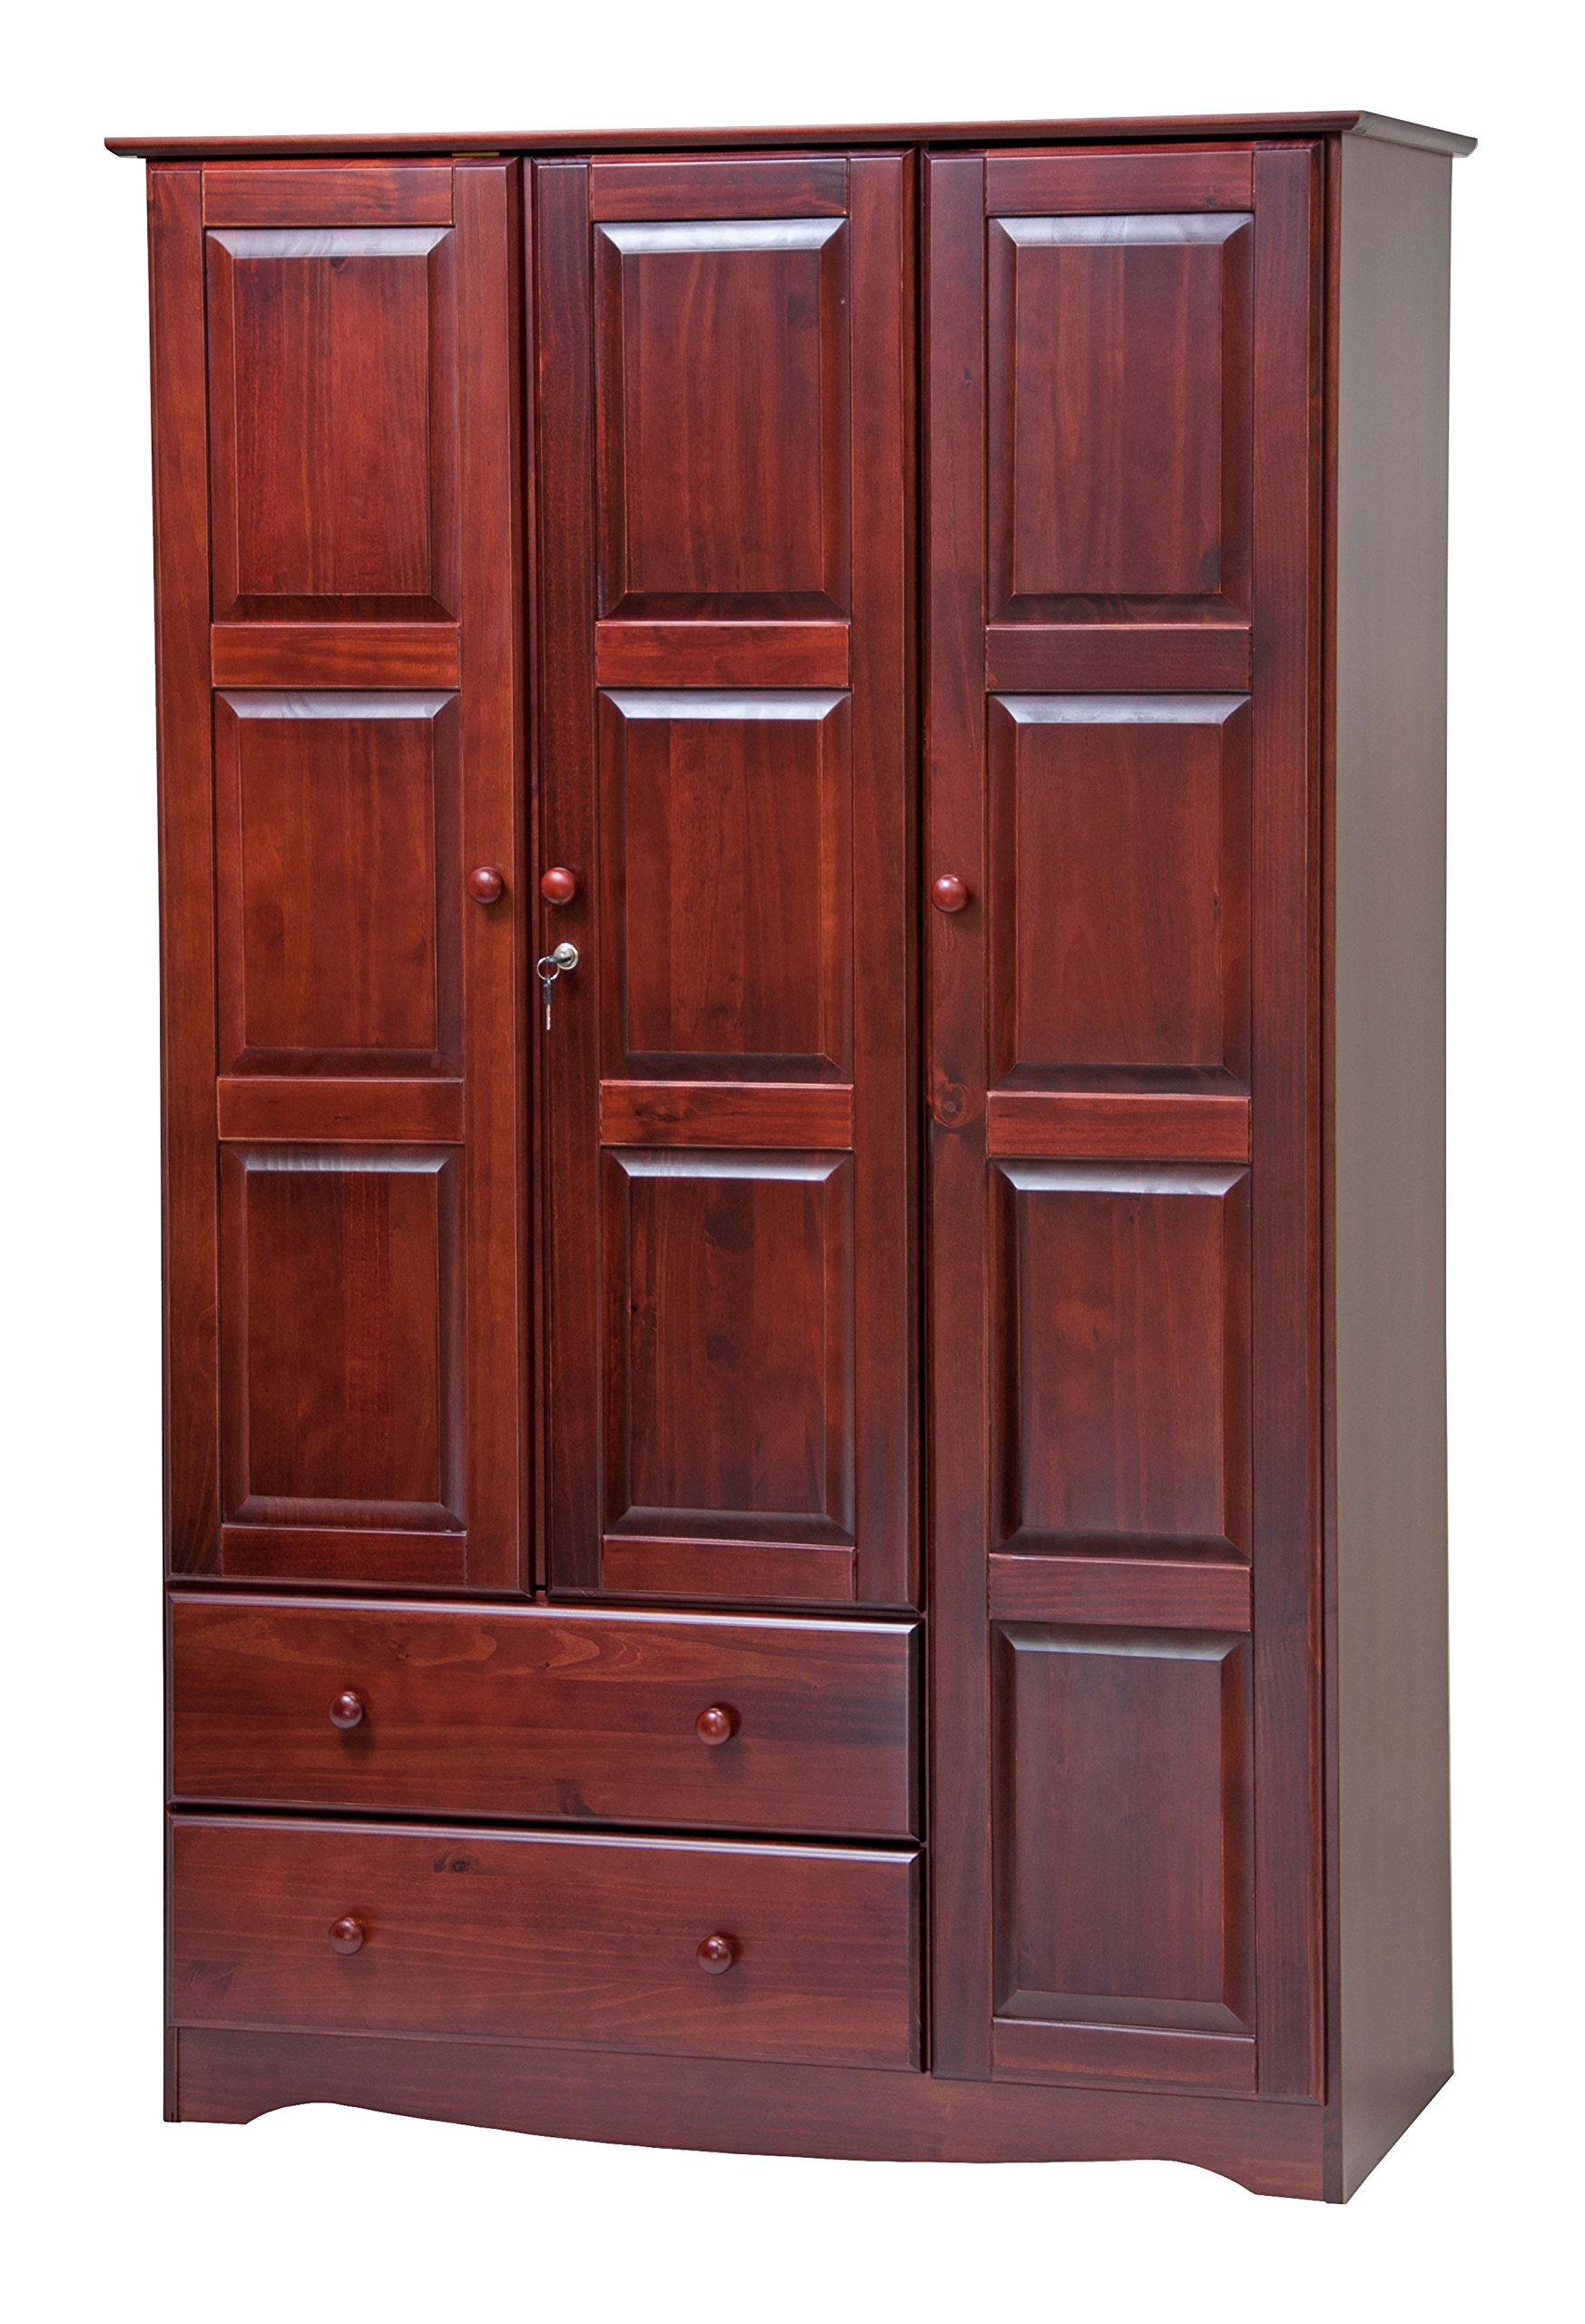 100% Solid Wood Grand Wardrobe/Armoire/Closet by Palace Imports, Mahogany, 46'' W x 72'' H x 21'' D